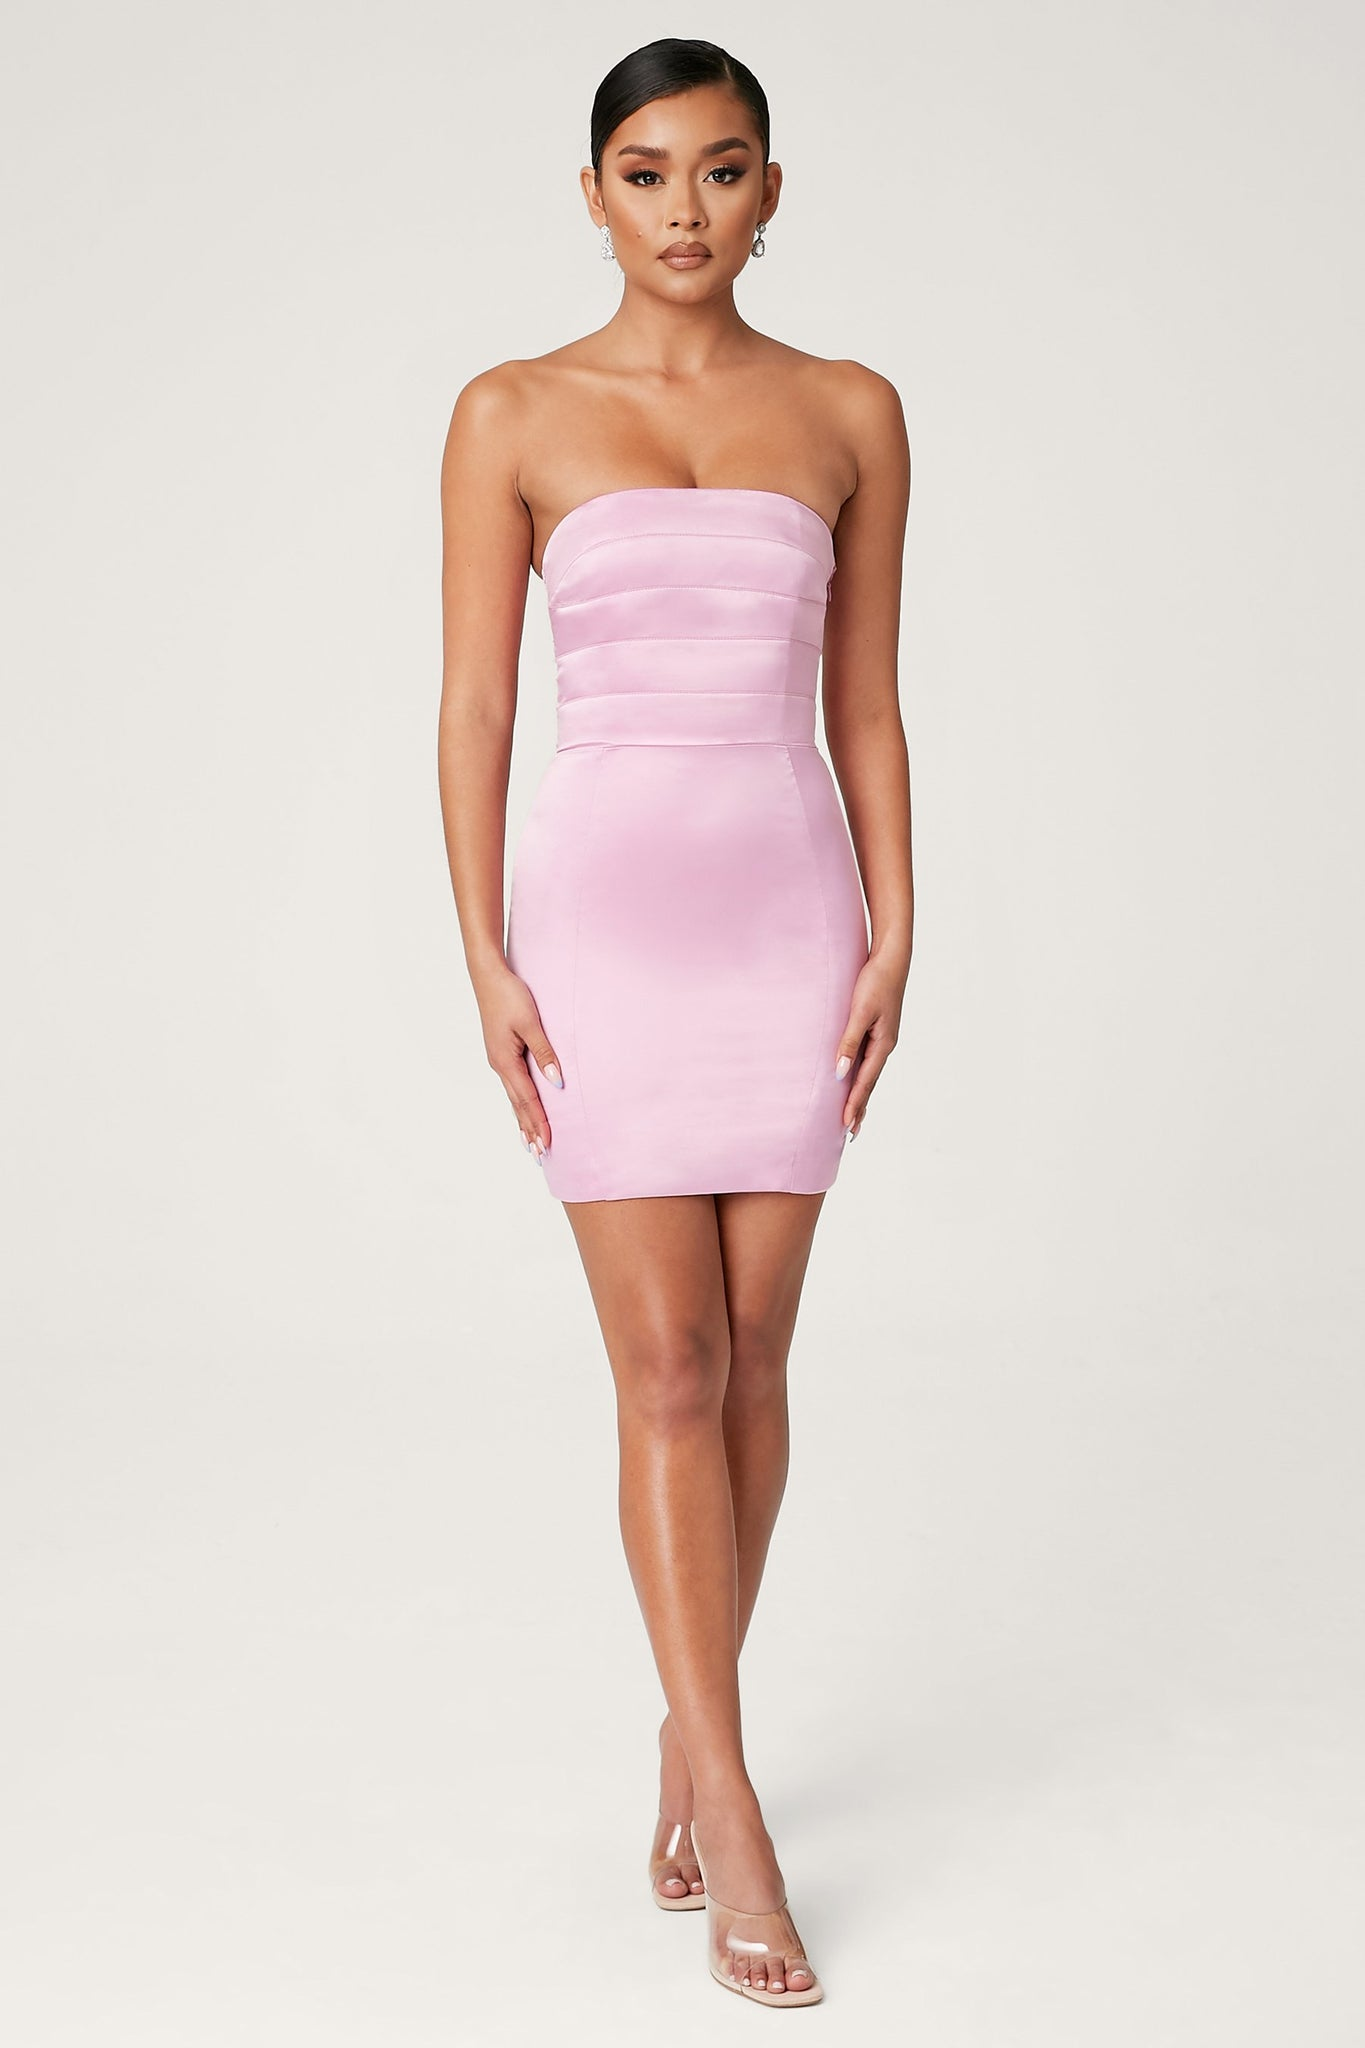 Alline Strapless Satin Mini Dress - Pink - MESHKI